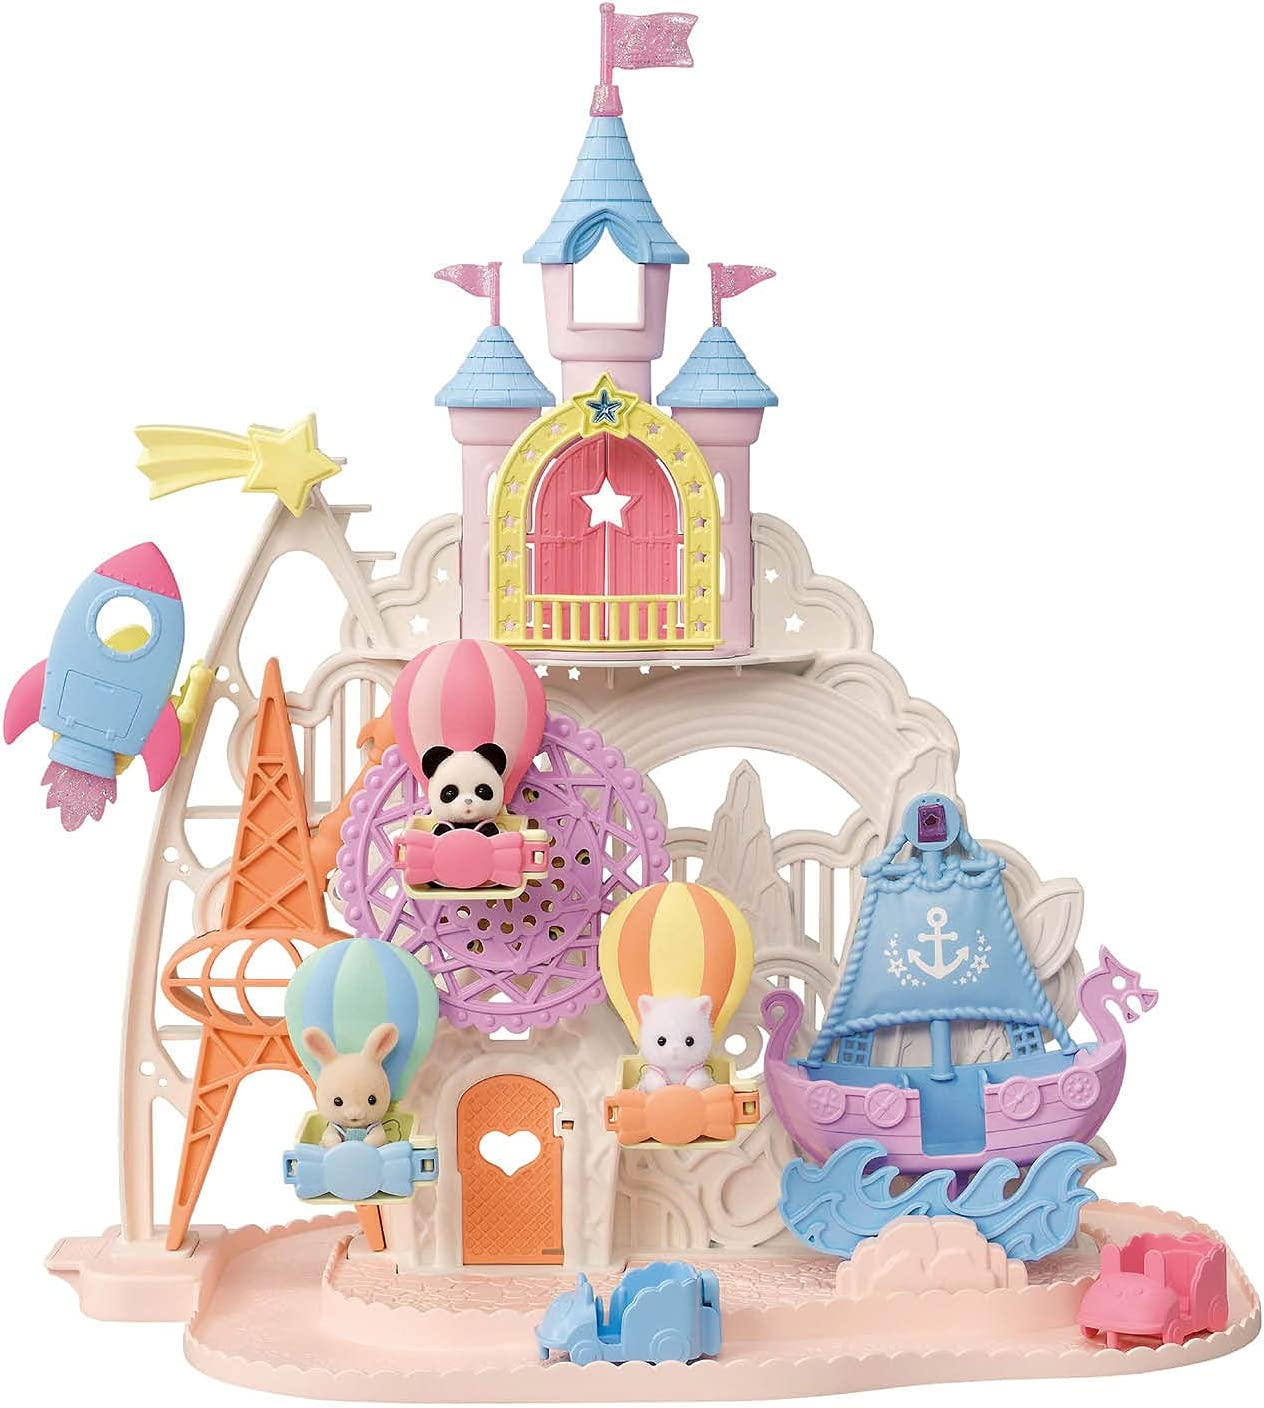 Calico Calico Critters Baby Amusement Park, Dollhouse Playset with 3 Figures Included